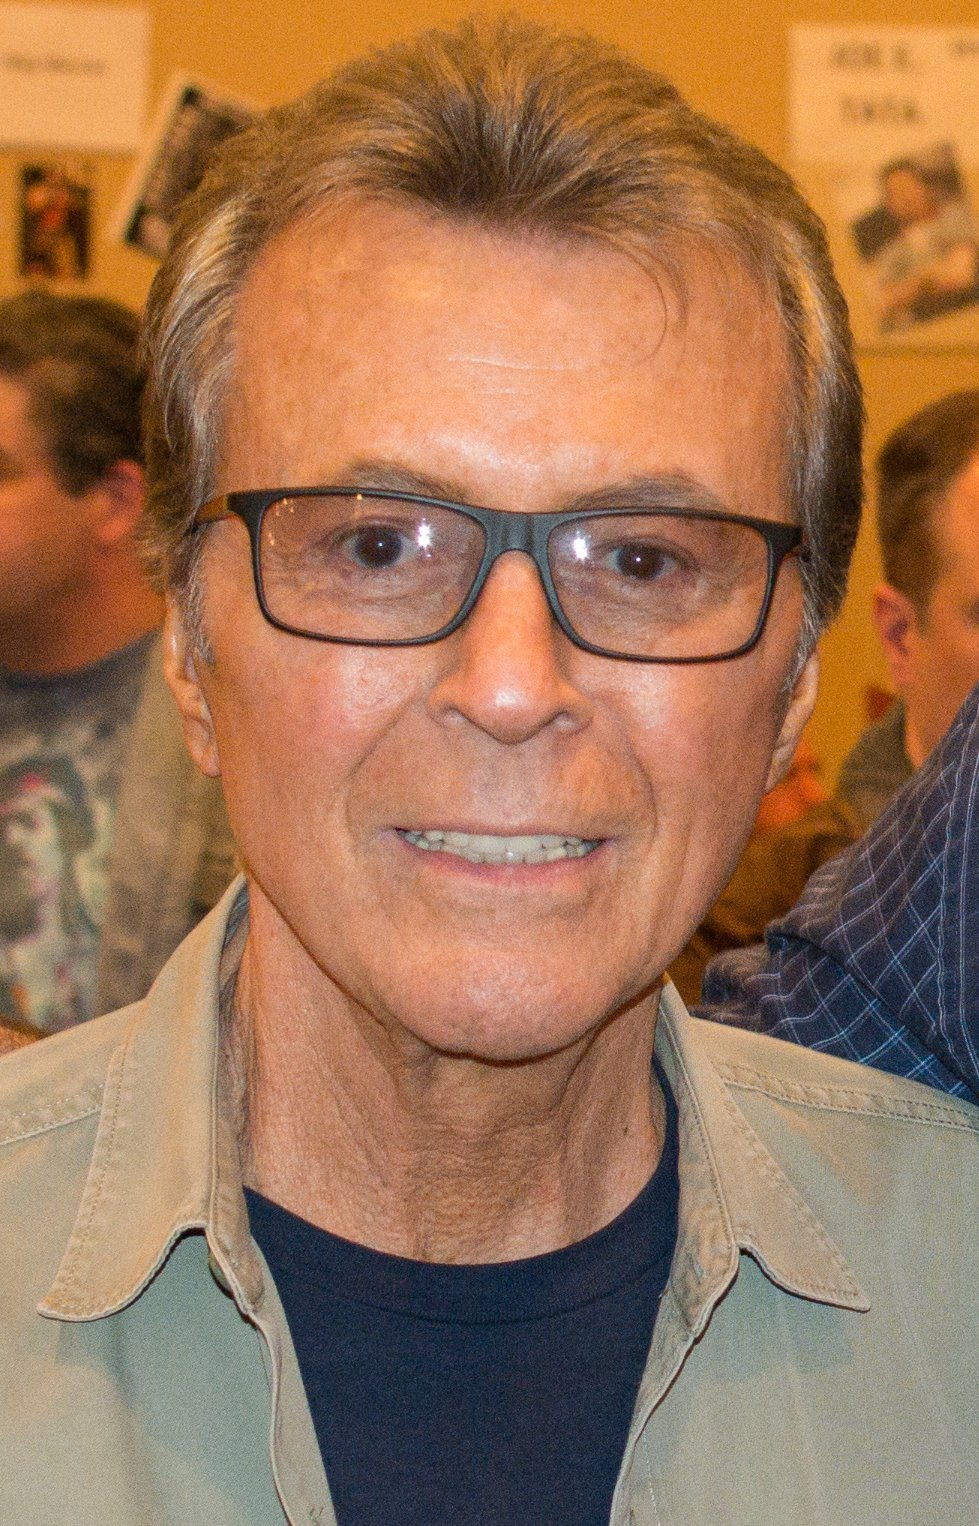 James Darren in Parsippany, New Jersey on April 24, 2015 | Source: Wikimedia Commons